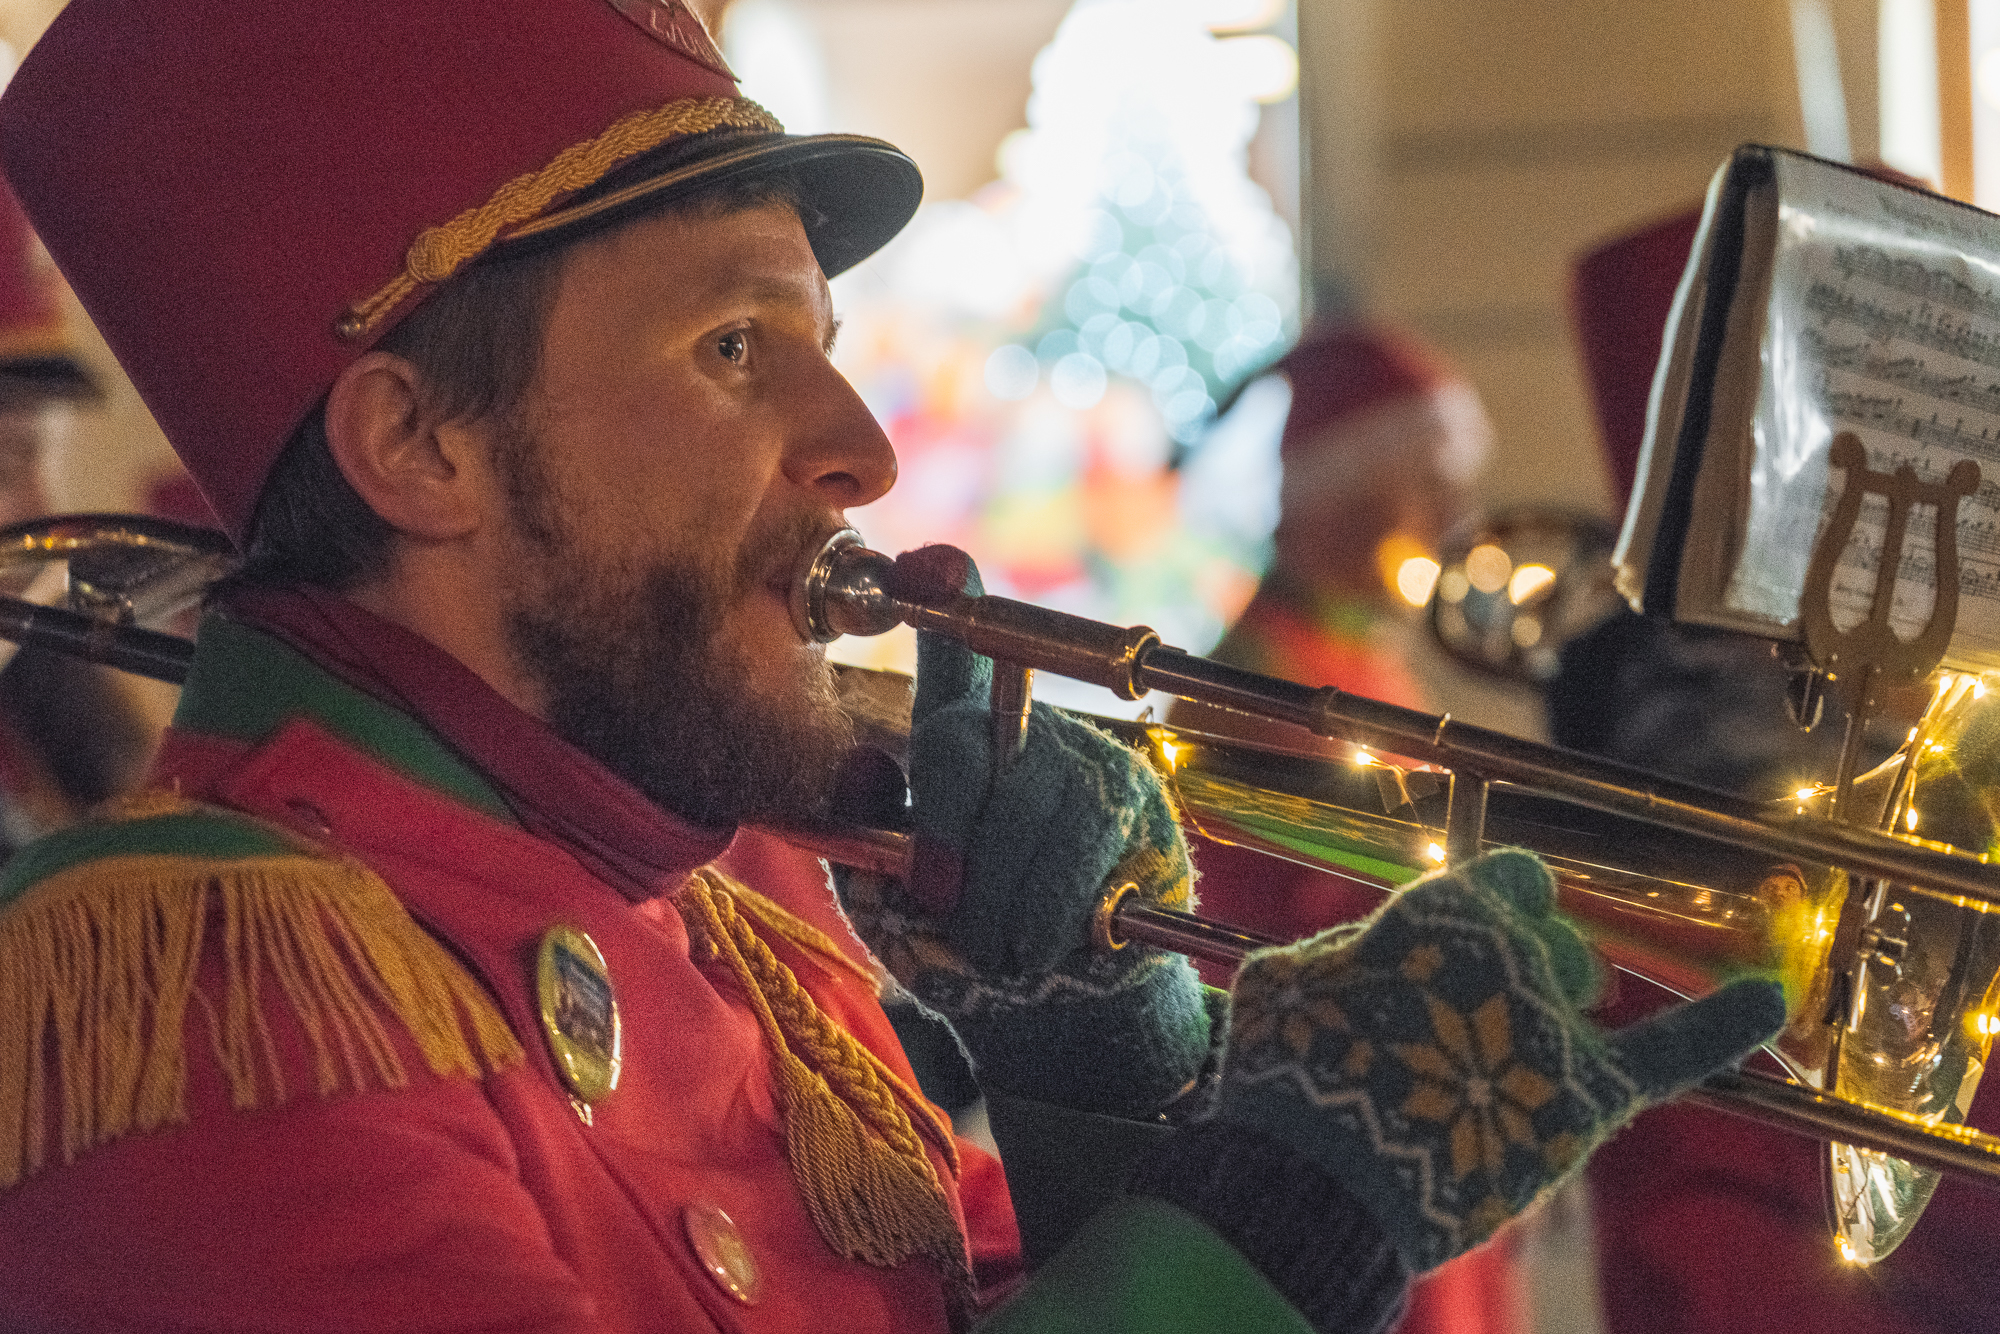 A trumpet player at the Santa Claus event in Congress Square in Ljubljana, Slovenia